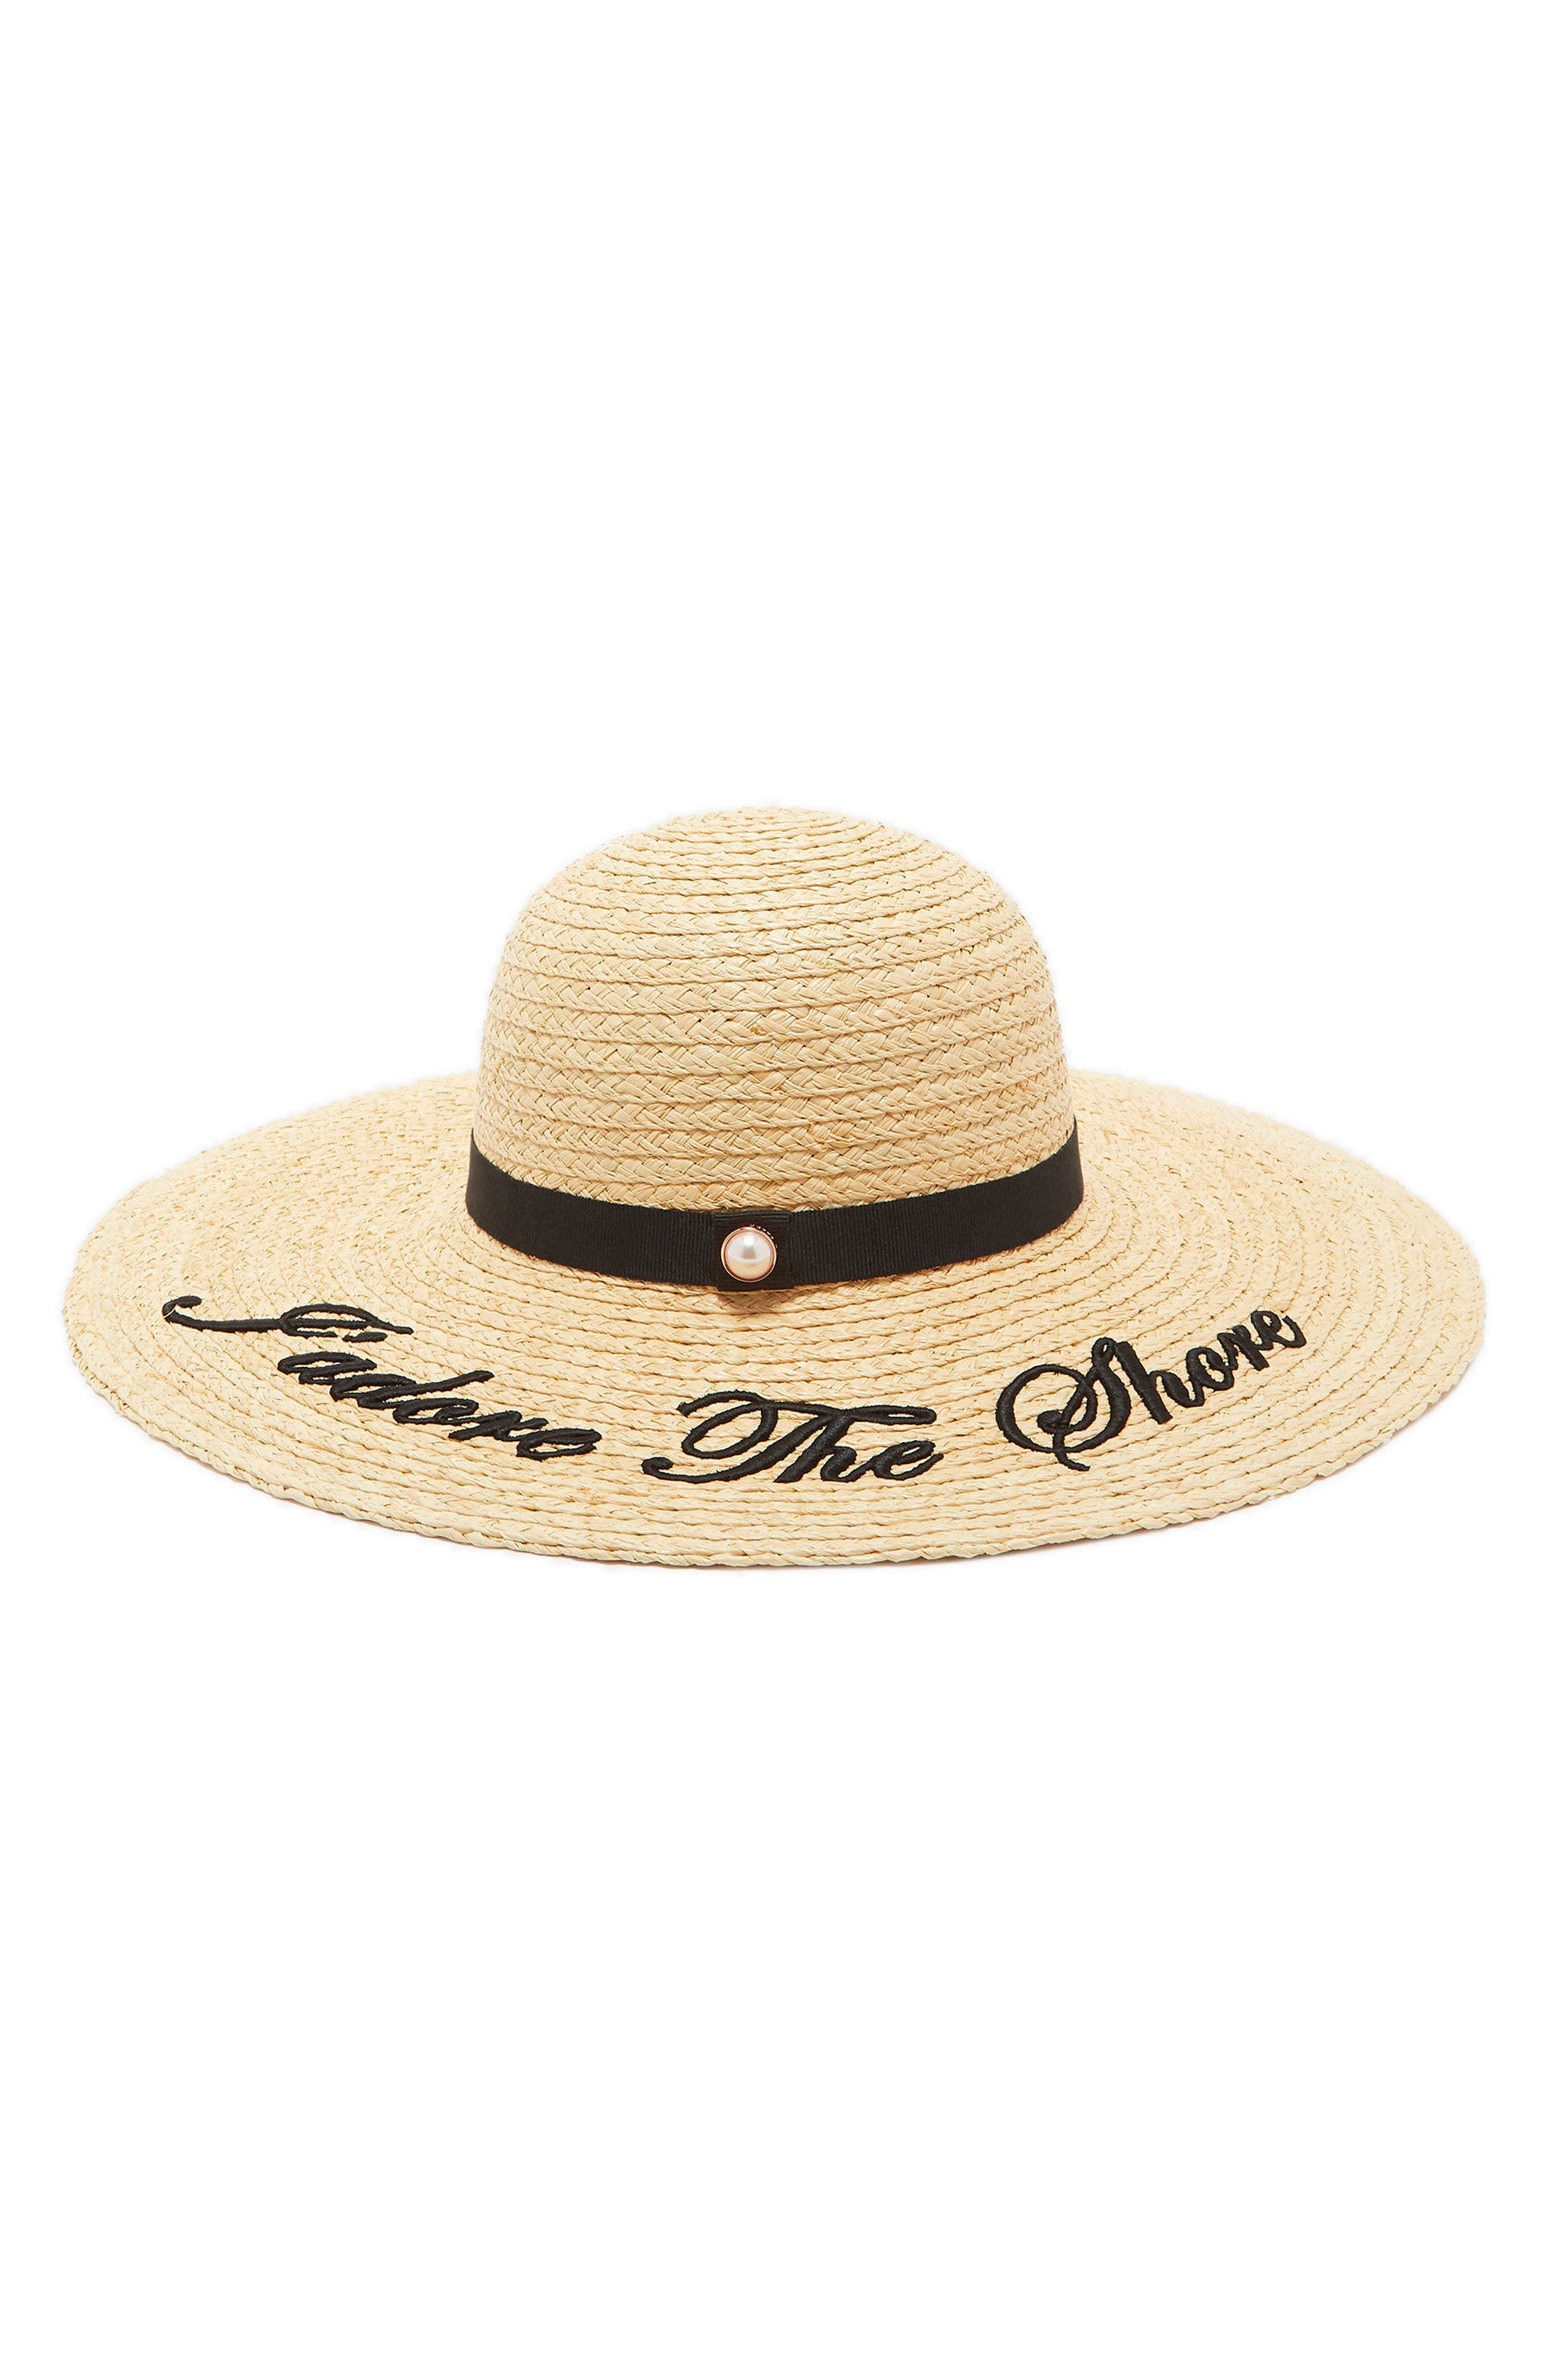 Script Embroidered Floppy Hat,                         Main,                         color, Straw